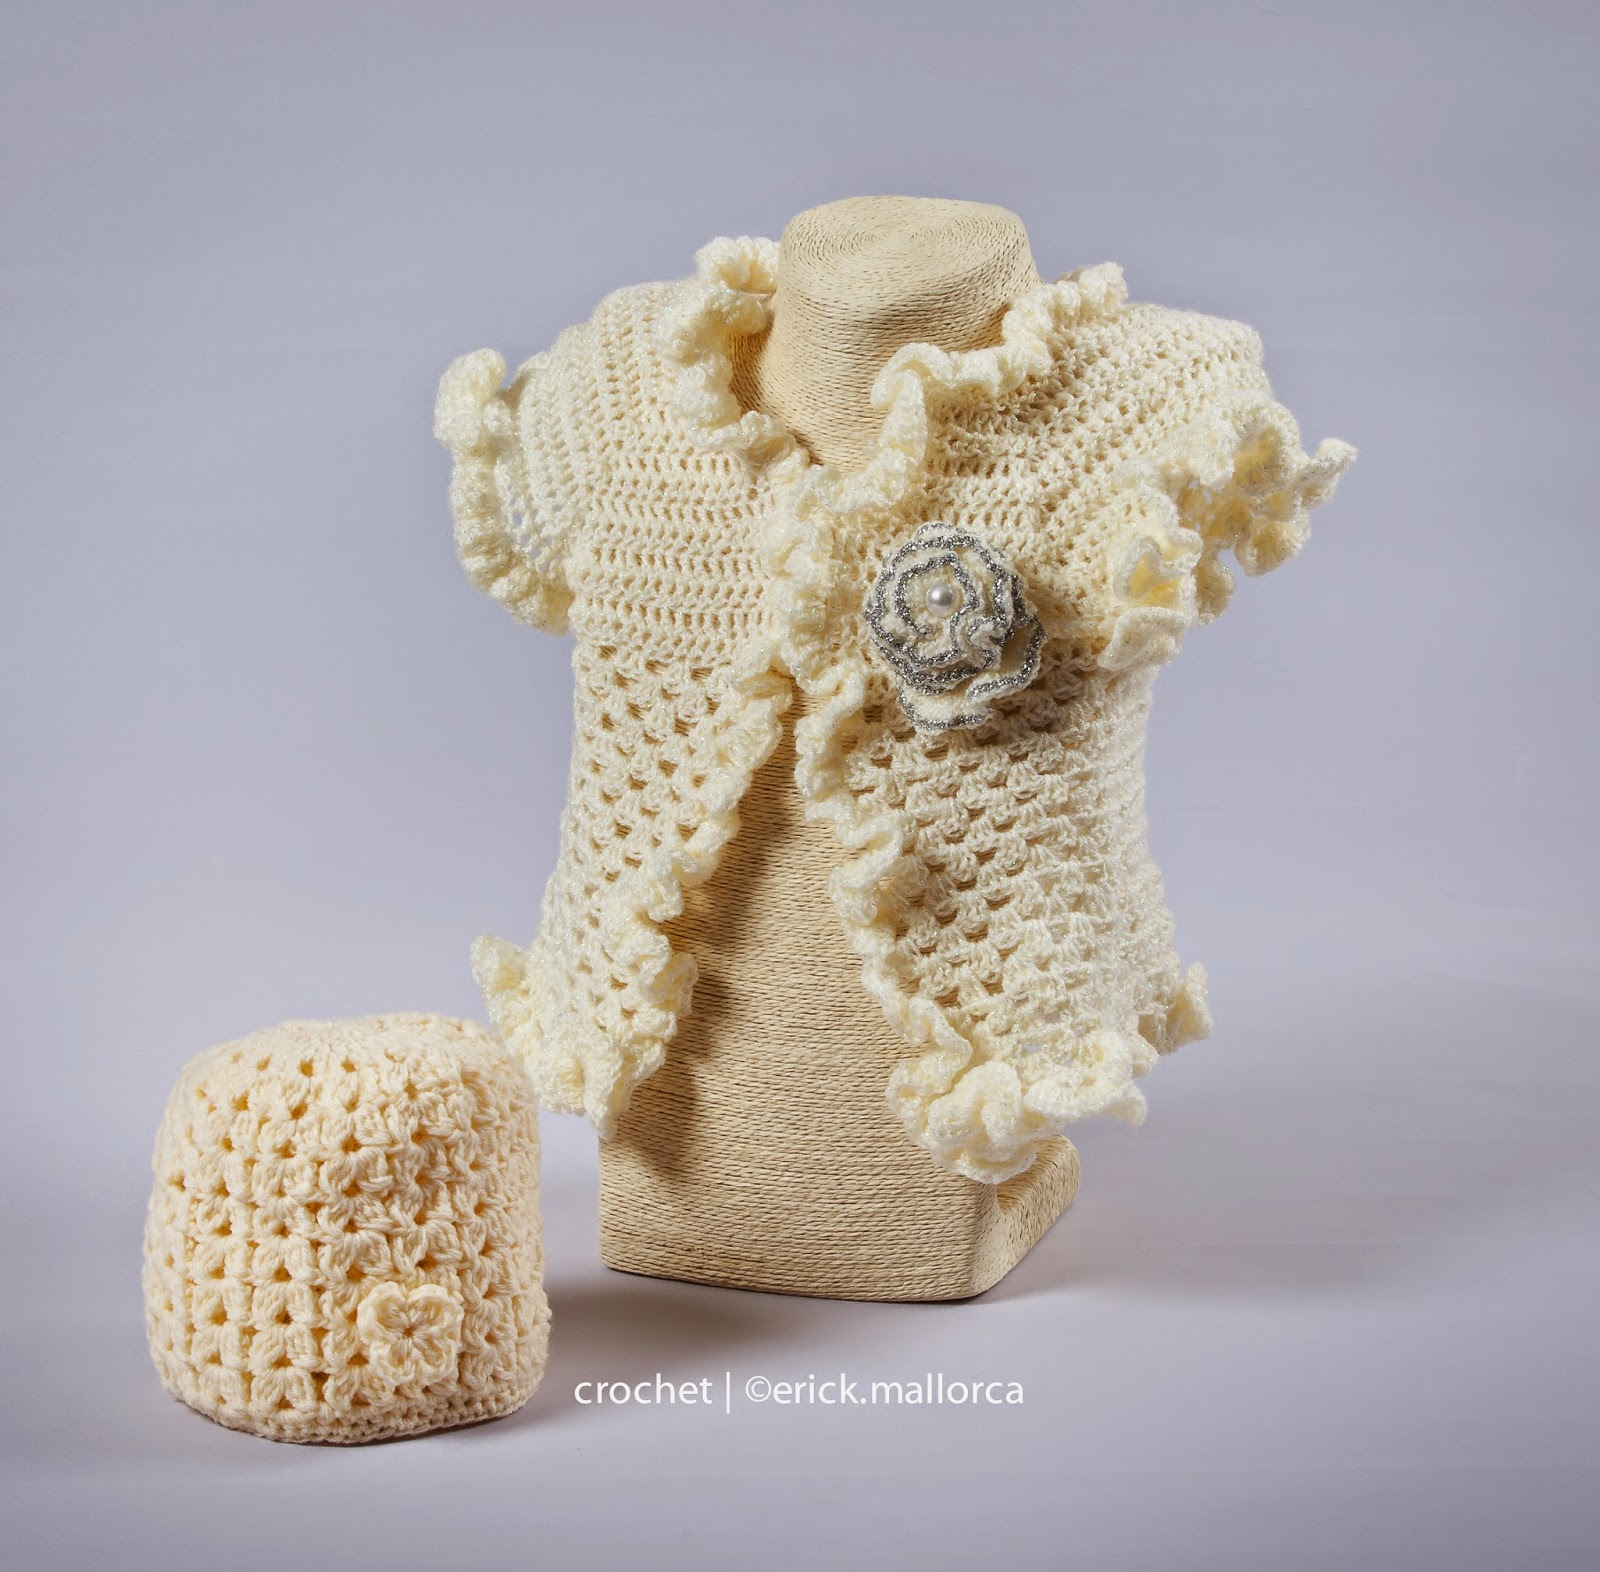 crochet Erick Mallorca photography